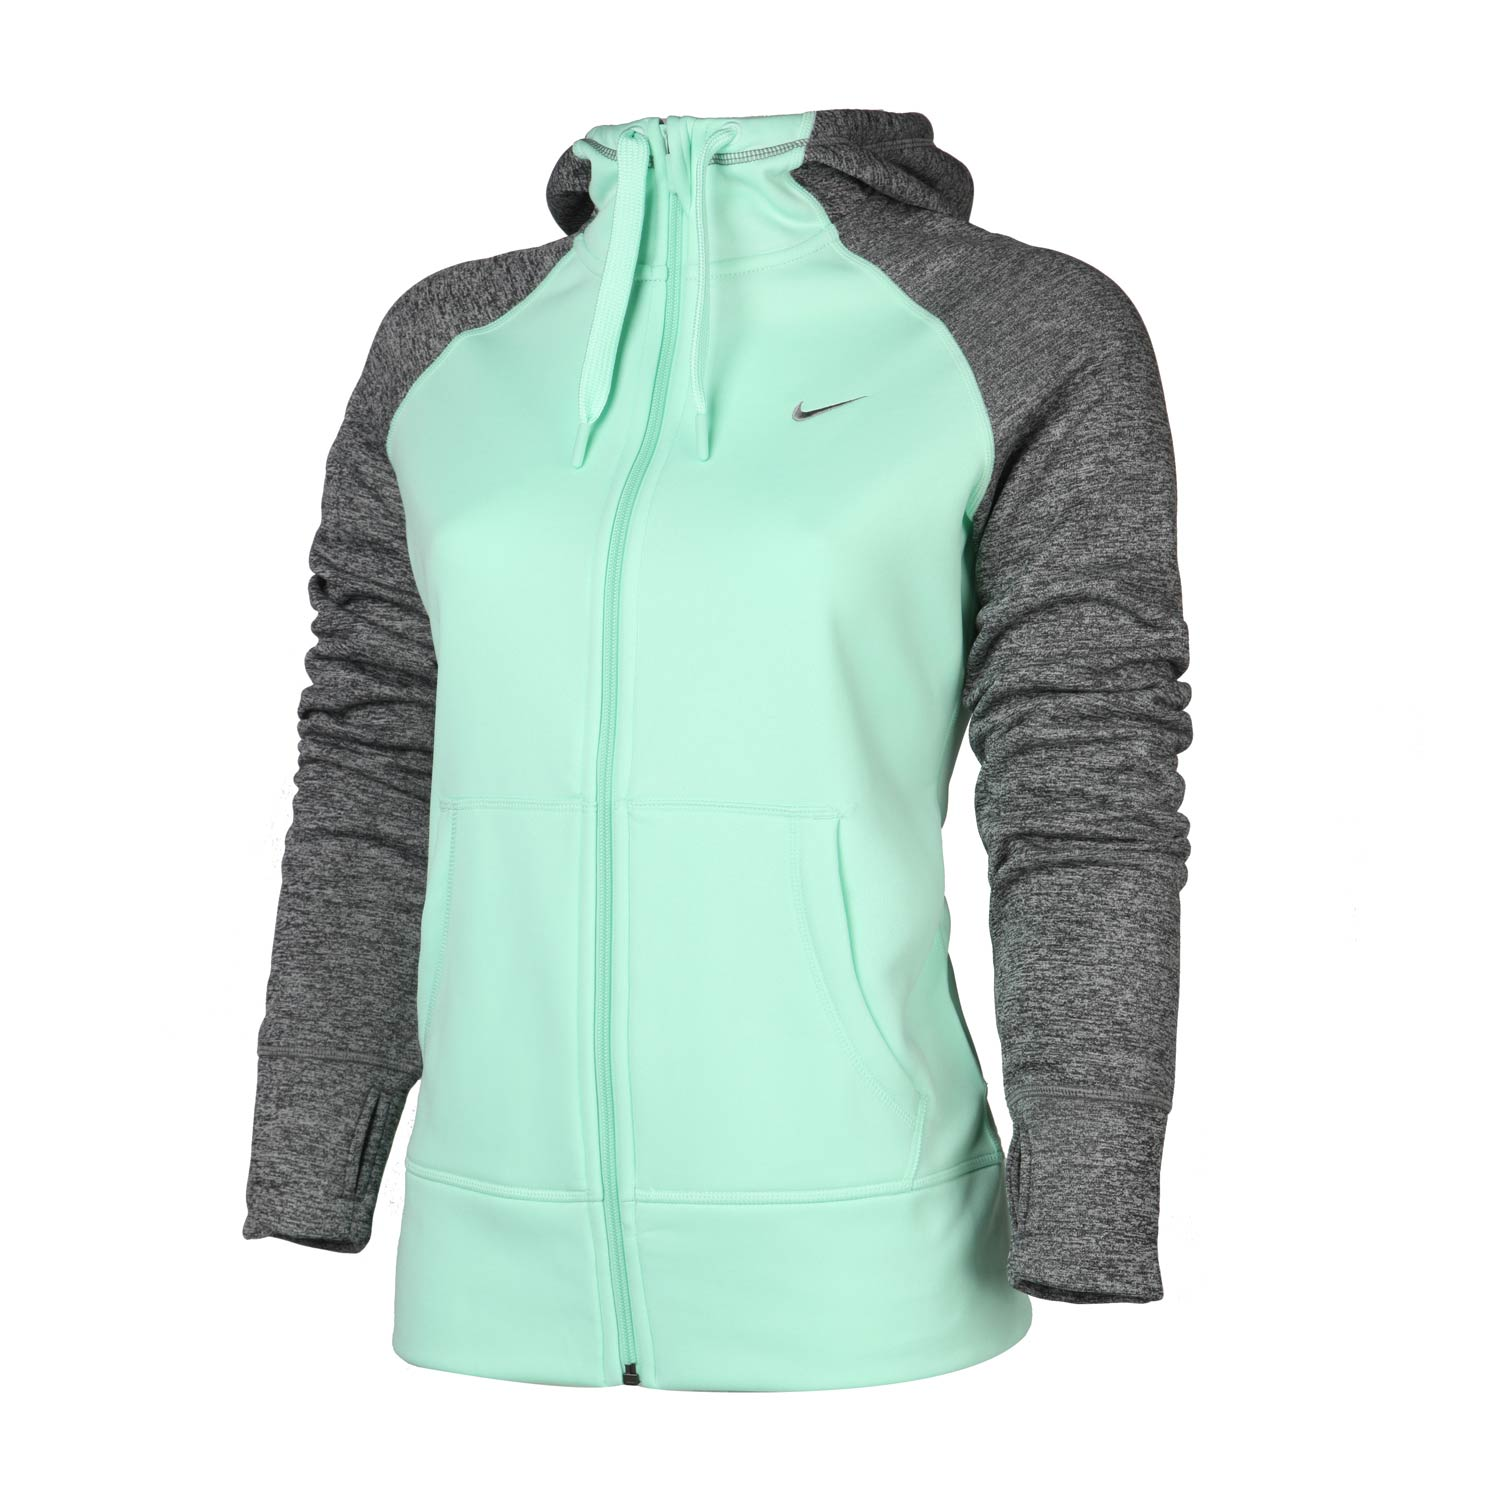 Counters authentic Nike Nike Sportswear 2013 new women's jacket warm 548814-680-382 - China shopping, taobao agent ,Buy from China shop online website